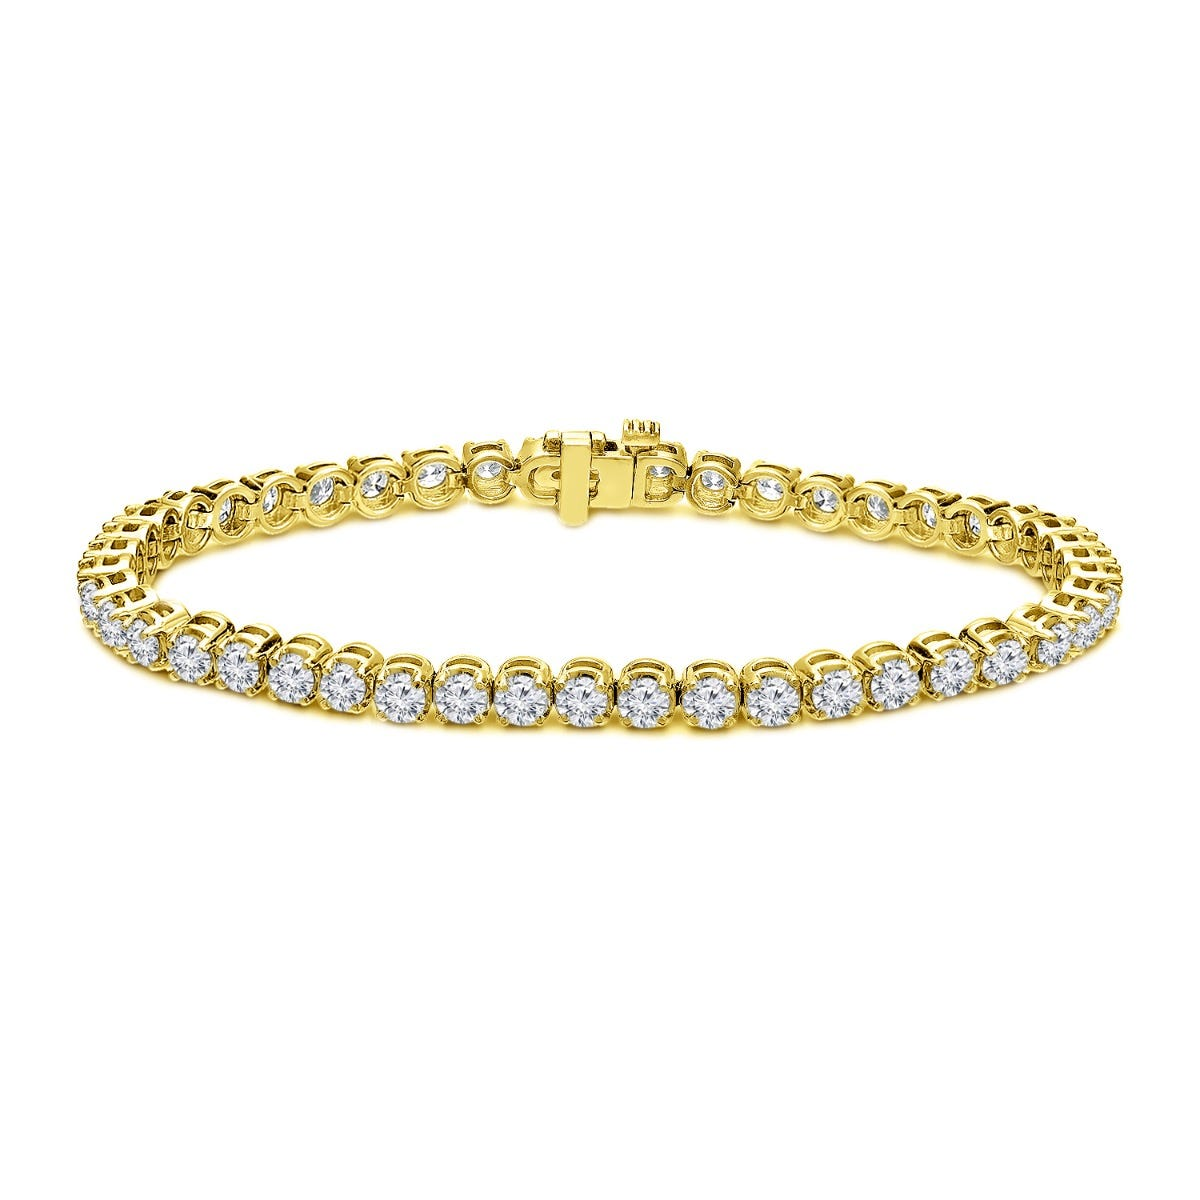 6ctw. 4-Prong Round Link Diamond Tennis Bracelet in 14K Yellow Gold (JK, I2-I3)